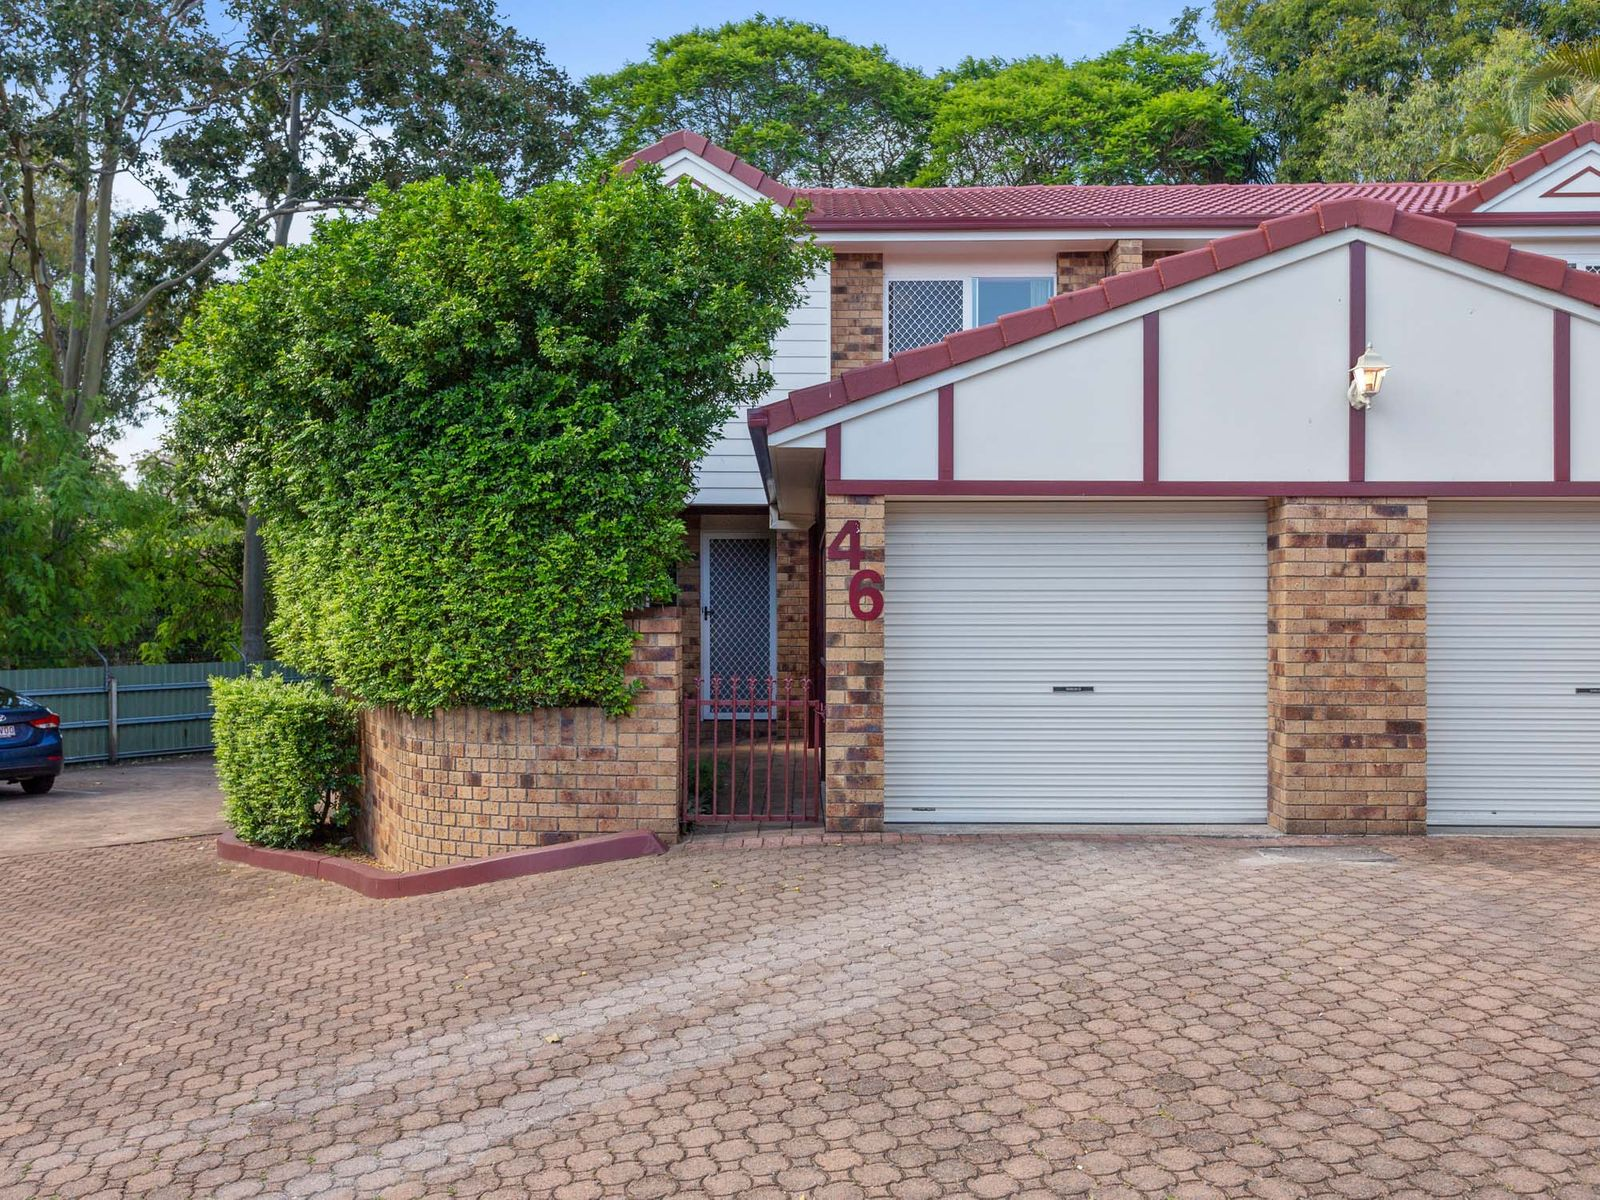 46/68 Springwood Road, Rochedale South, QLD 4123